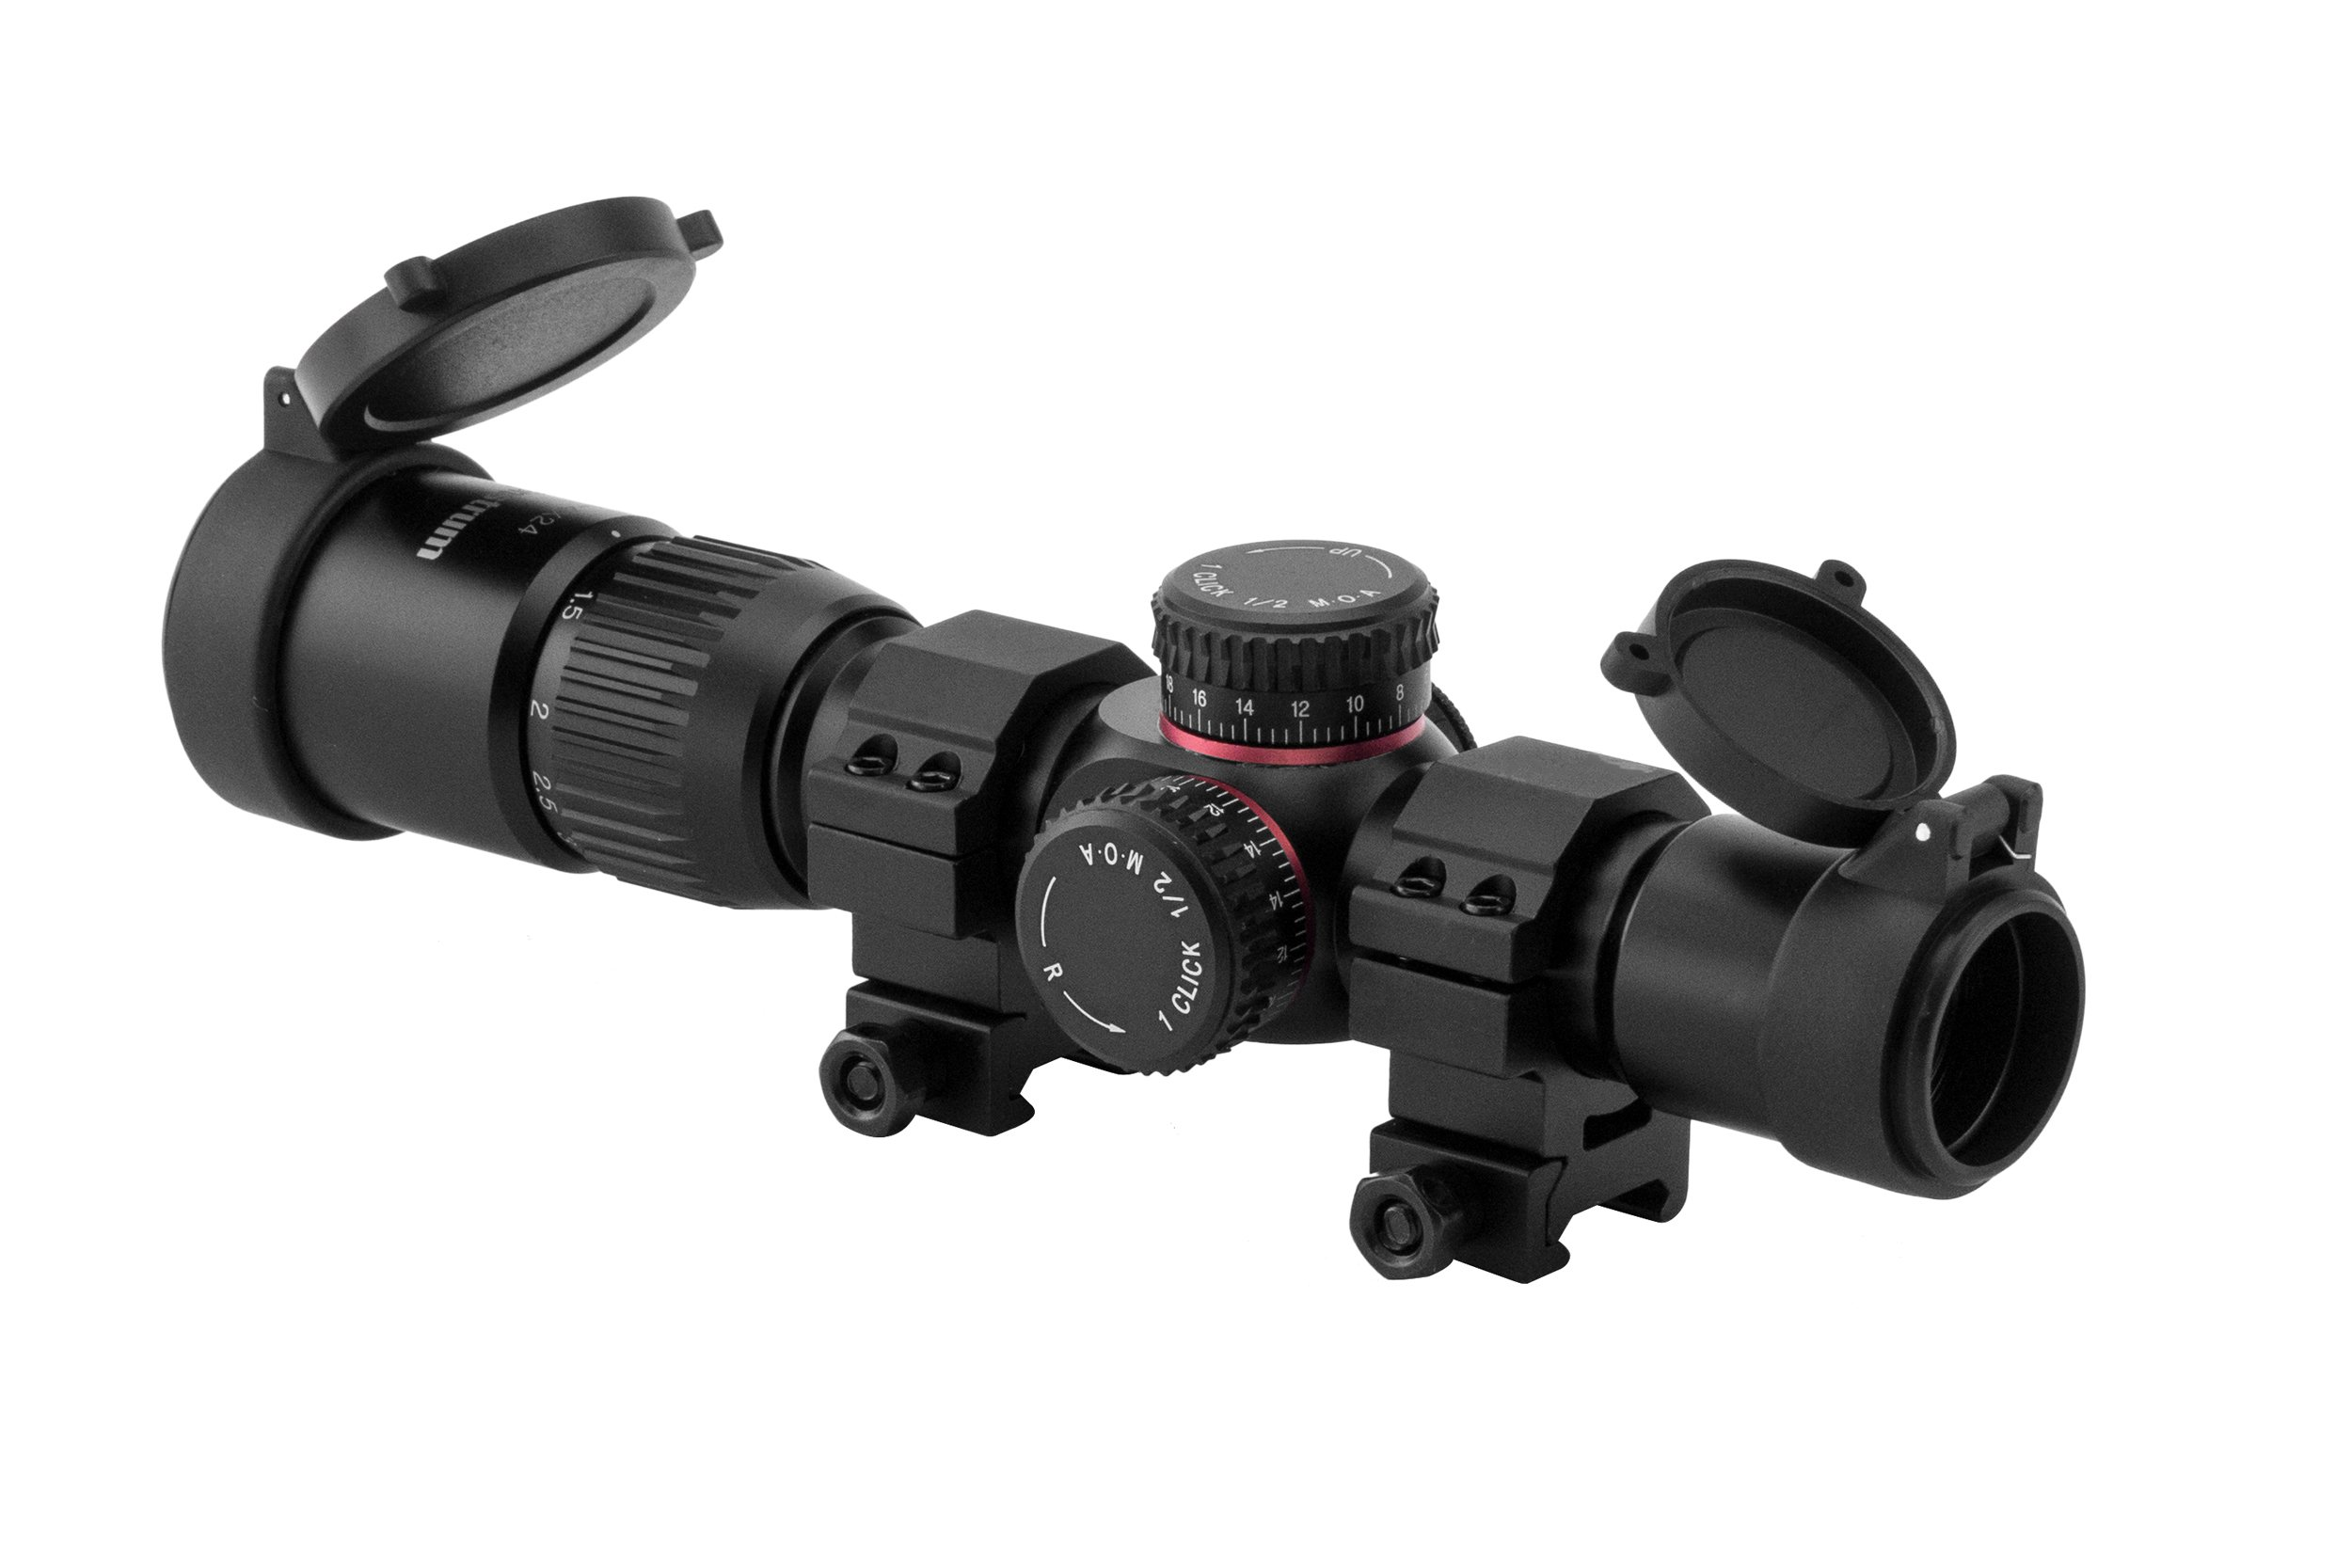 Monstrum Tactical G2 1-4x24 First Focal Plane (FFP) Rifle Scope with Illuminated BDC Reticle (Black) by Monstrum Tactical